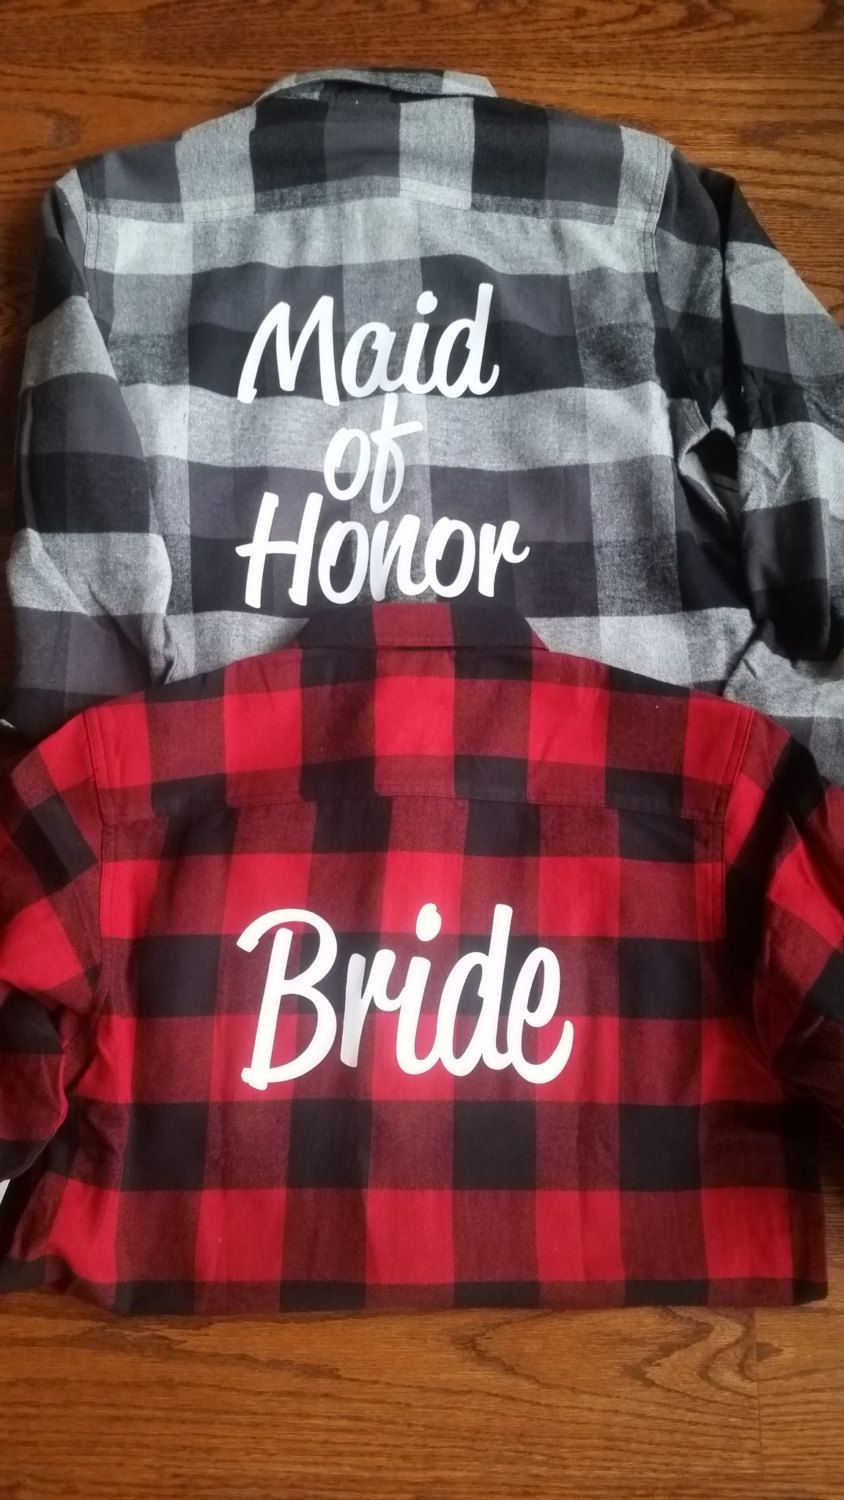 68d1003b39 Bridal Flannels Bridesmaid Flannels Wedding Flannels Wedding Prep Wedding  Getting Ready Bachelorette Party Shirts by TeamBrideDesigns on Etsy